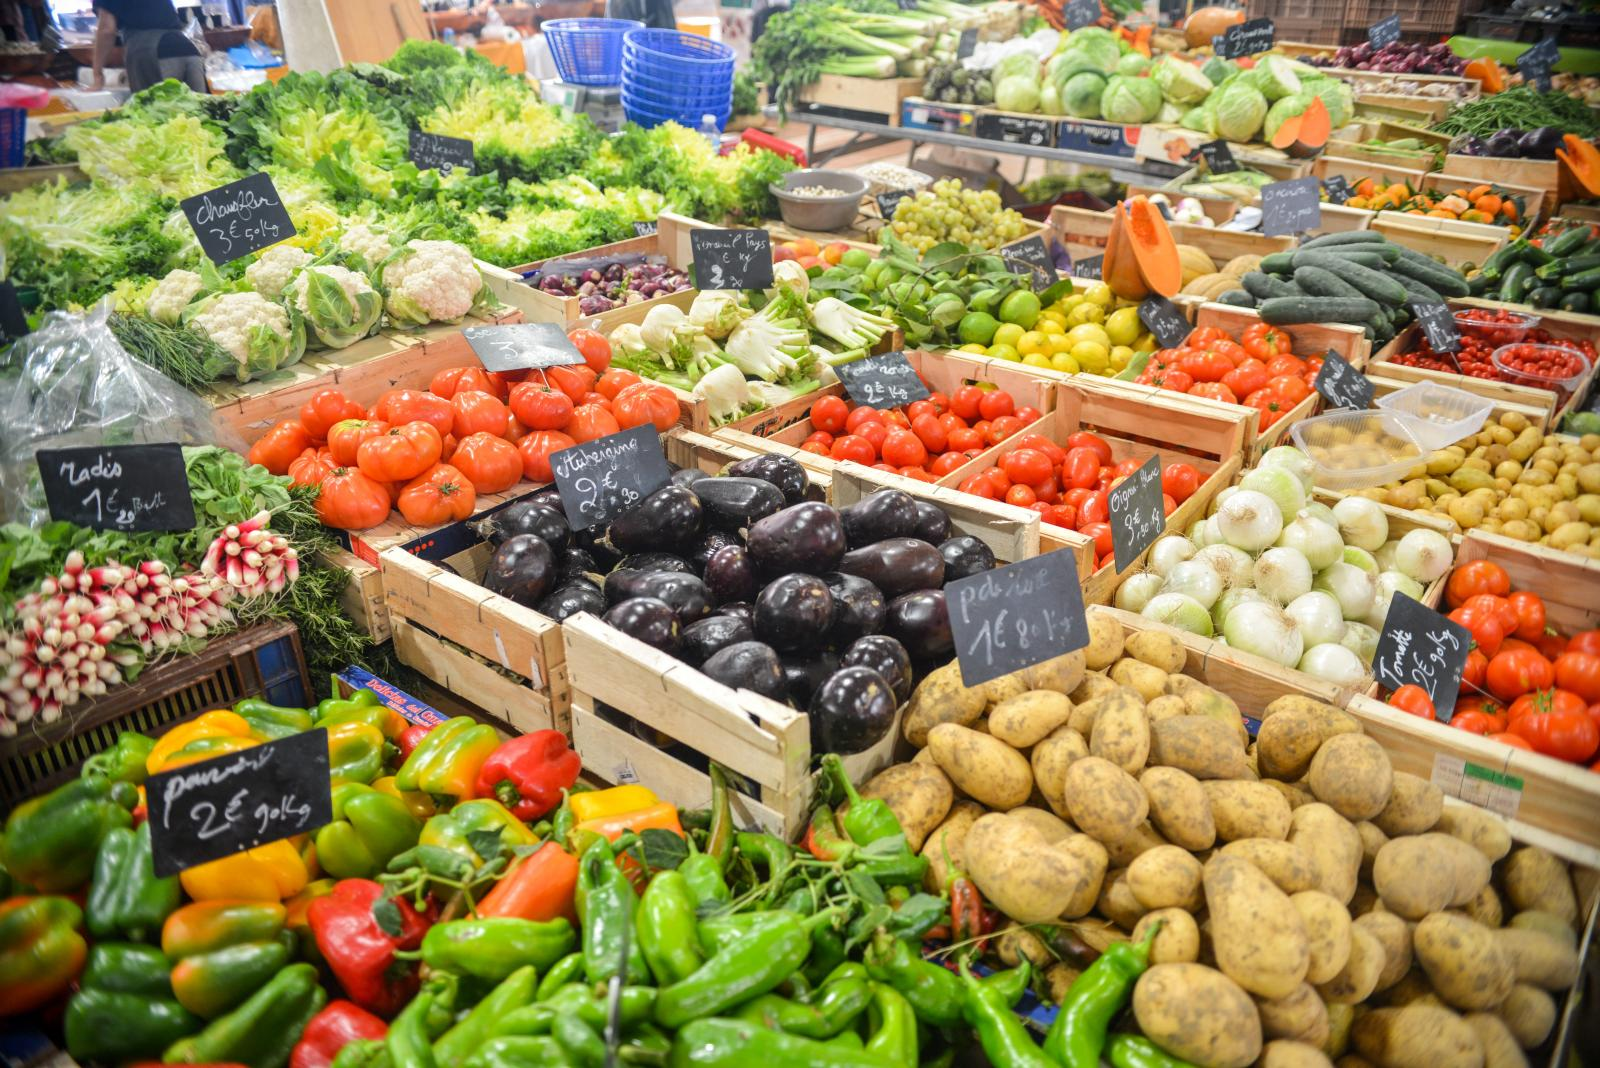 Vegetables in a wholesale market. Photo credit: Pexels